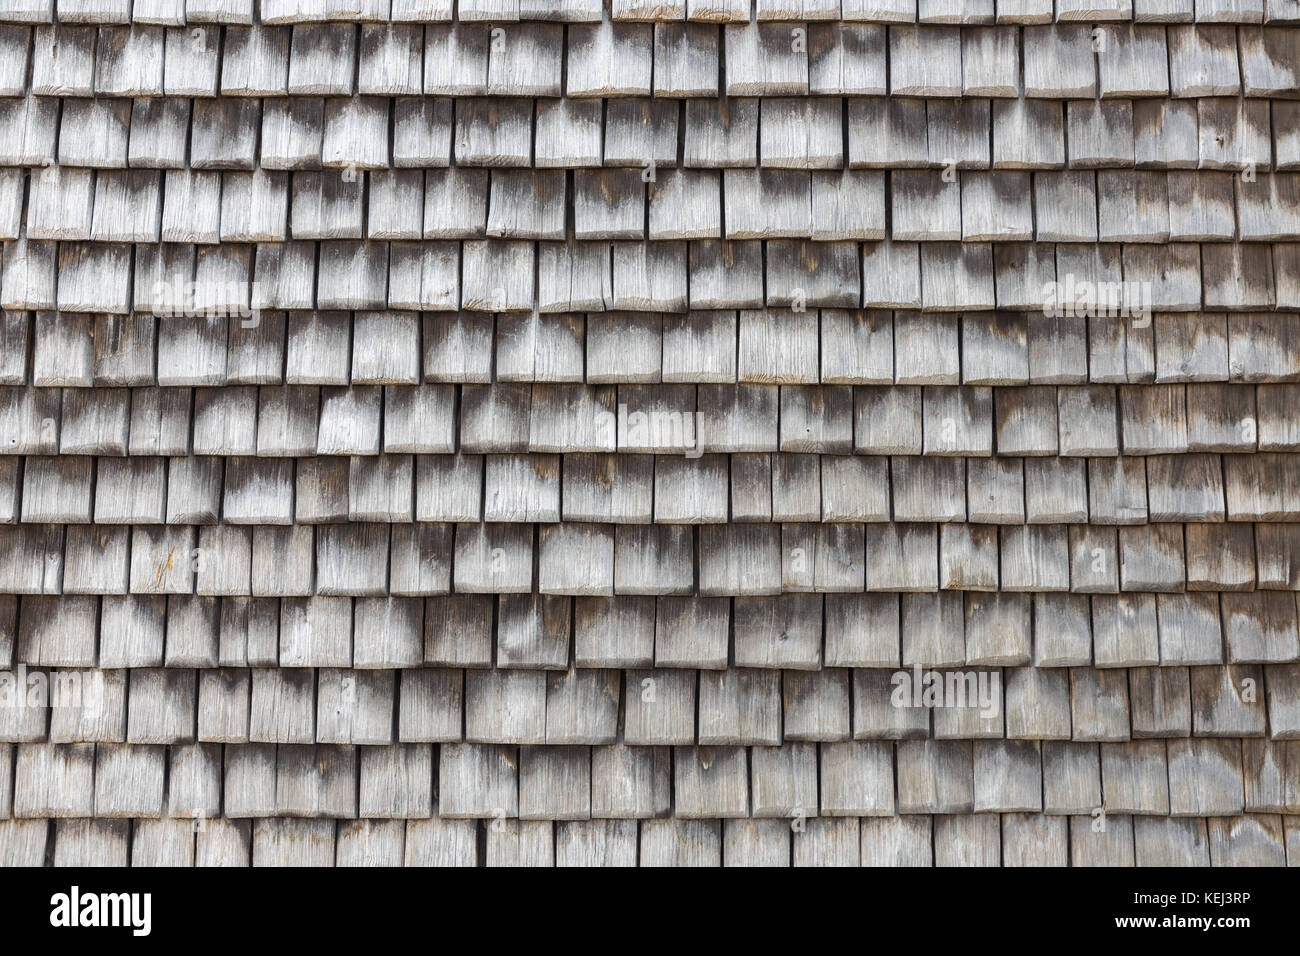 Slate covered wooden wall in Honfleur, France. Grey textured background. Stock Photo